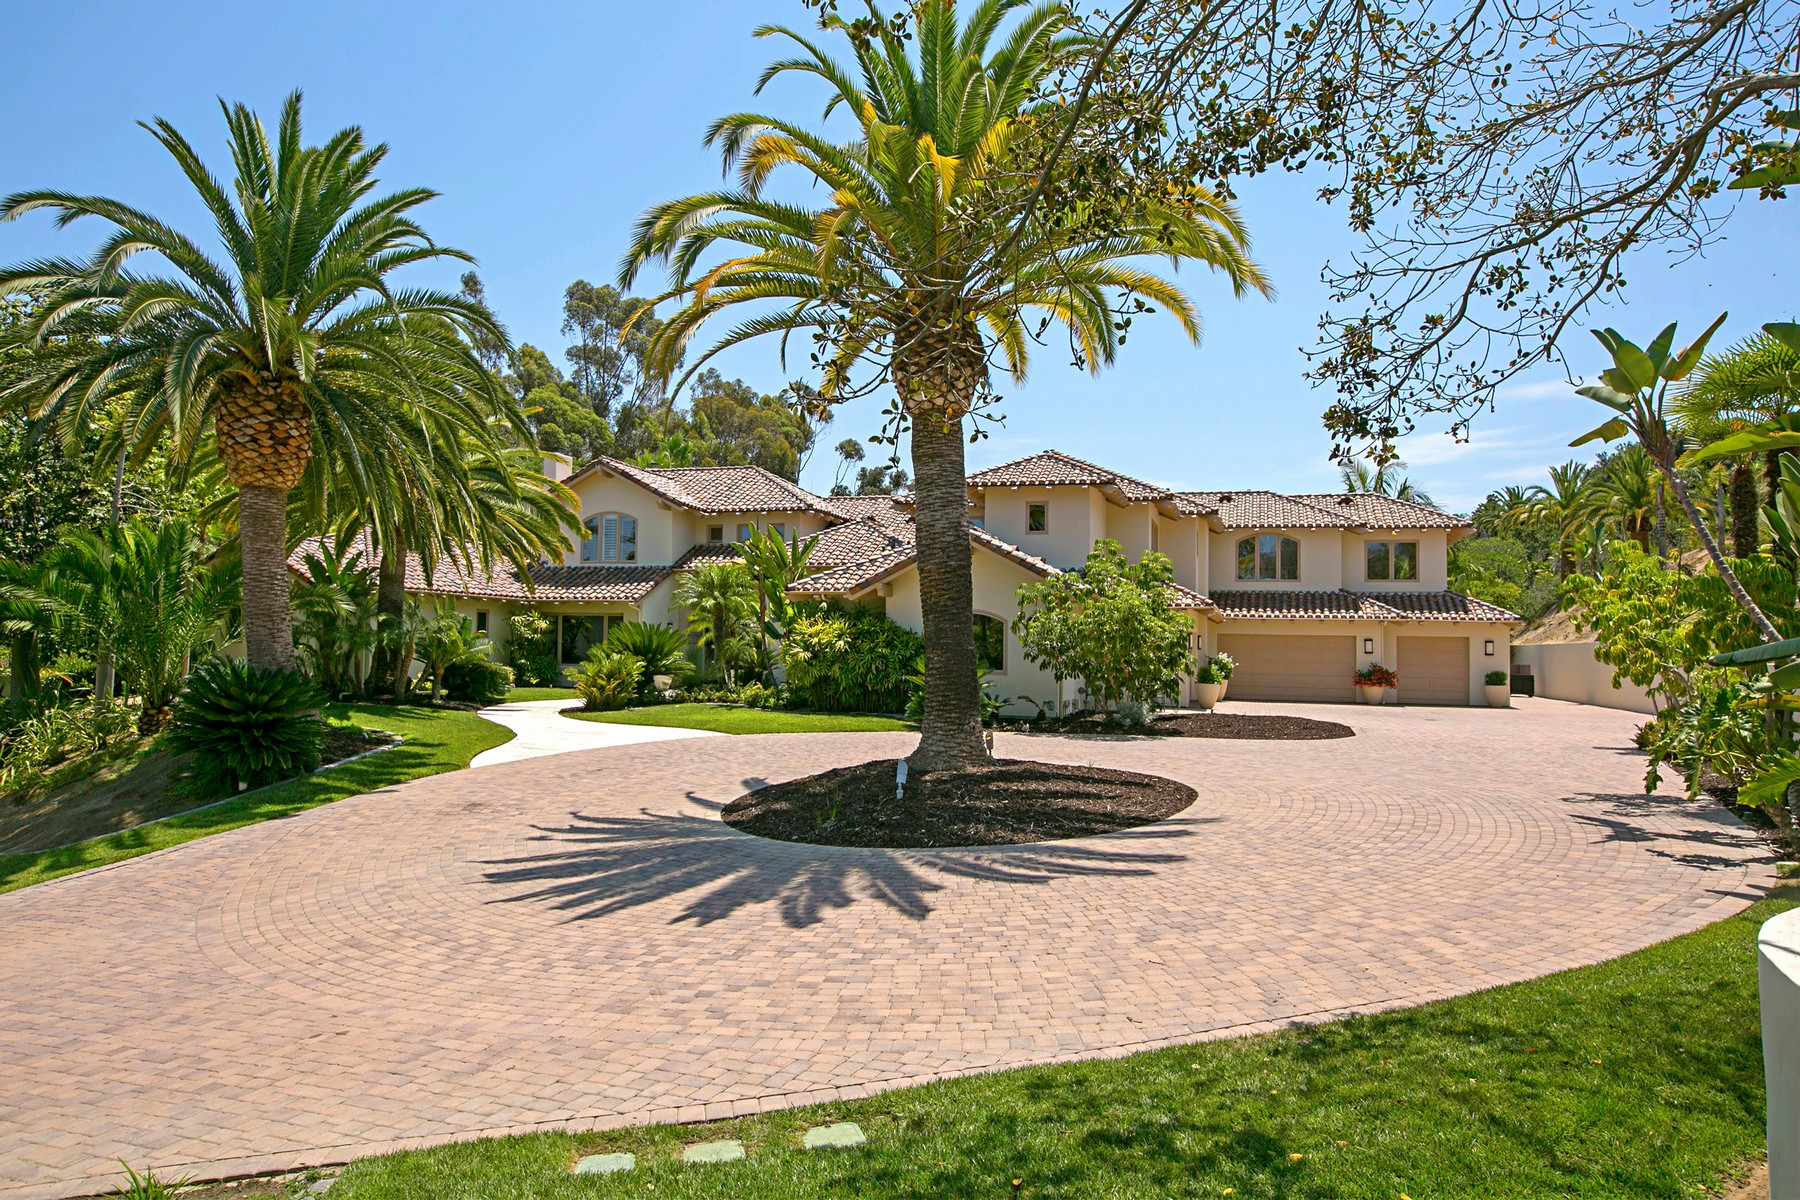 Additional photo for property listing at 17373 Calle Serena  Rancho Santa Fe, California 92067 Estados Unidos